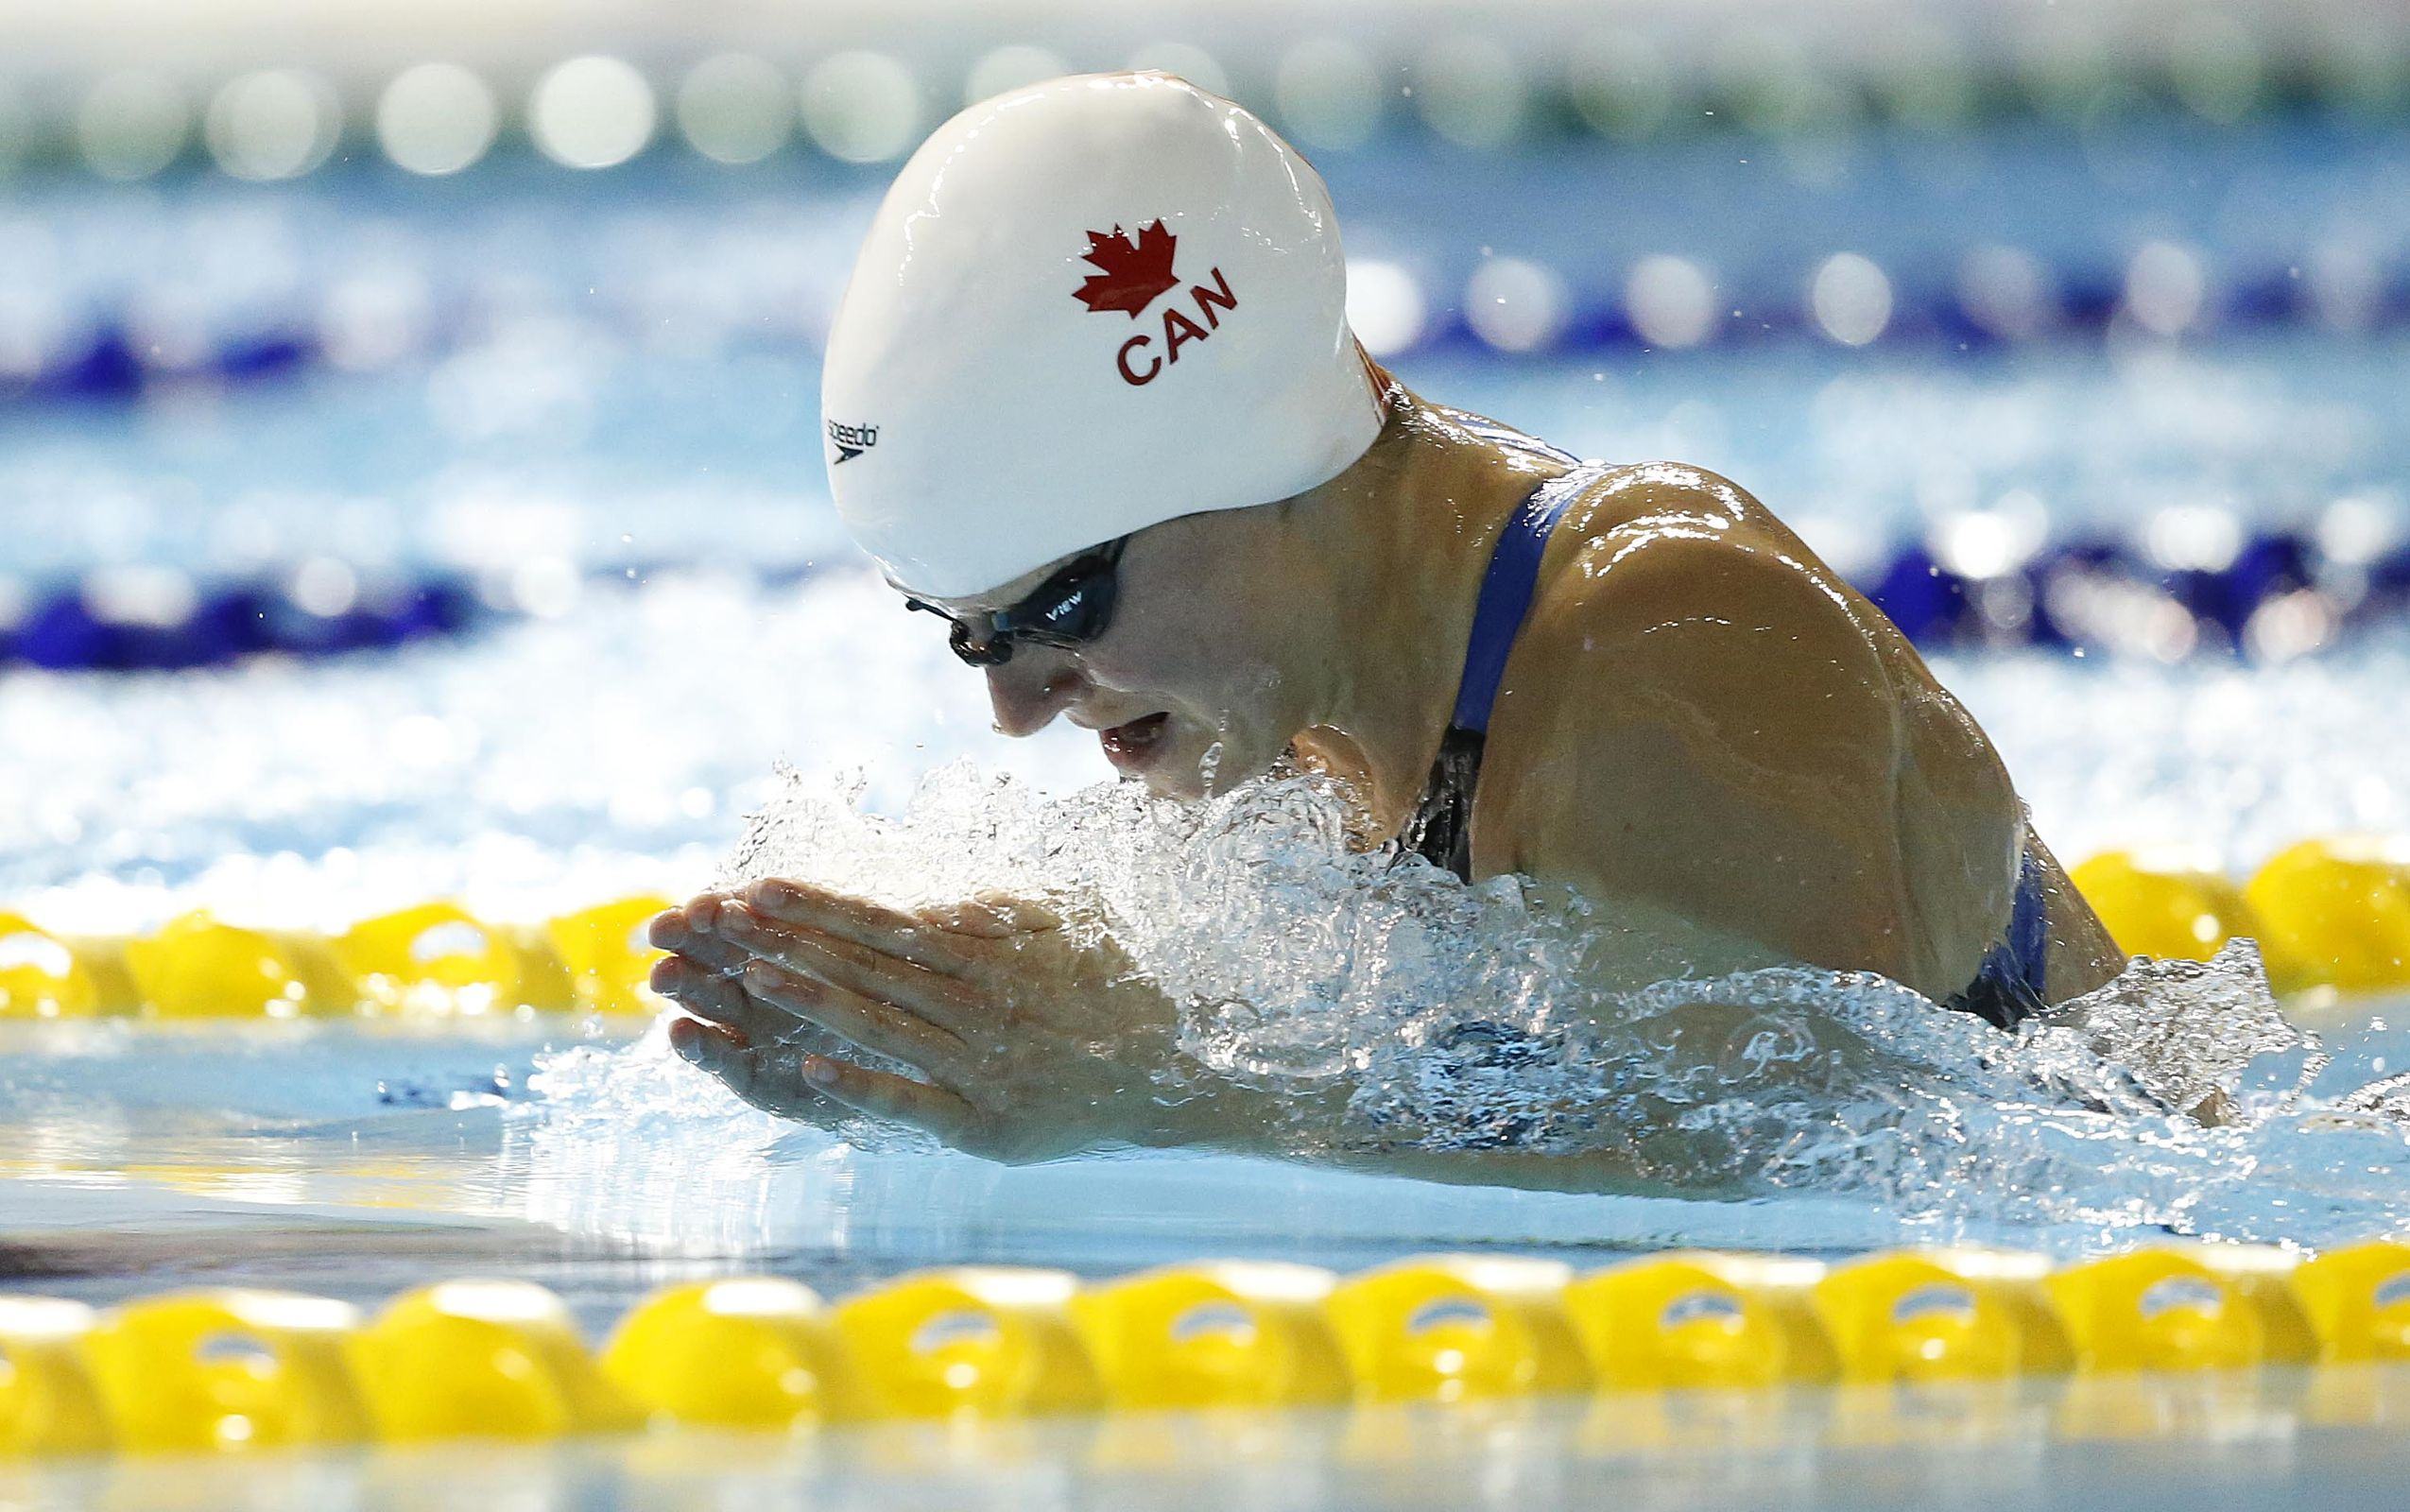 Jul 15, 2015; Toronto, Ontario, CAN; Martha McCabe of Canada in the women's 200m breaststroke preliminary heat during the 2015 Pan Am Games at Pan Am Aquatics UTS Centre and Field House. Mandatory Credit: Erich Schlegel-USA TODAY Sports